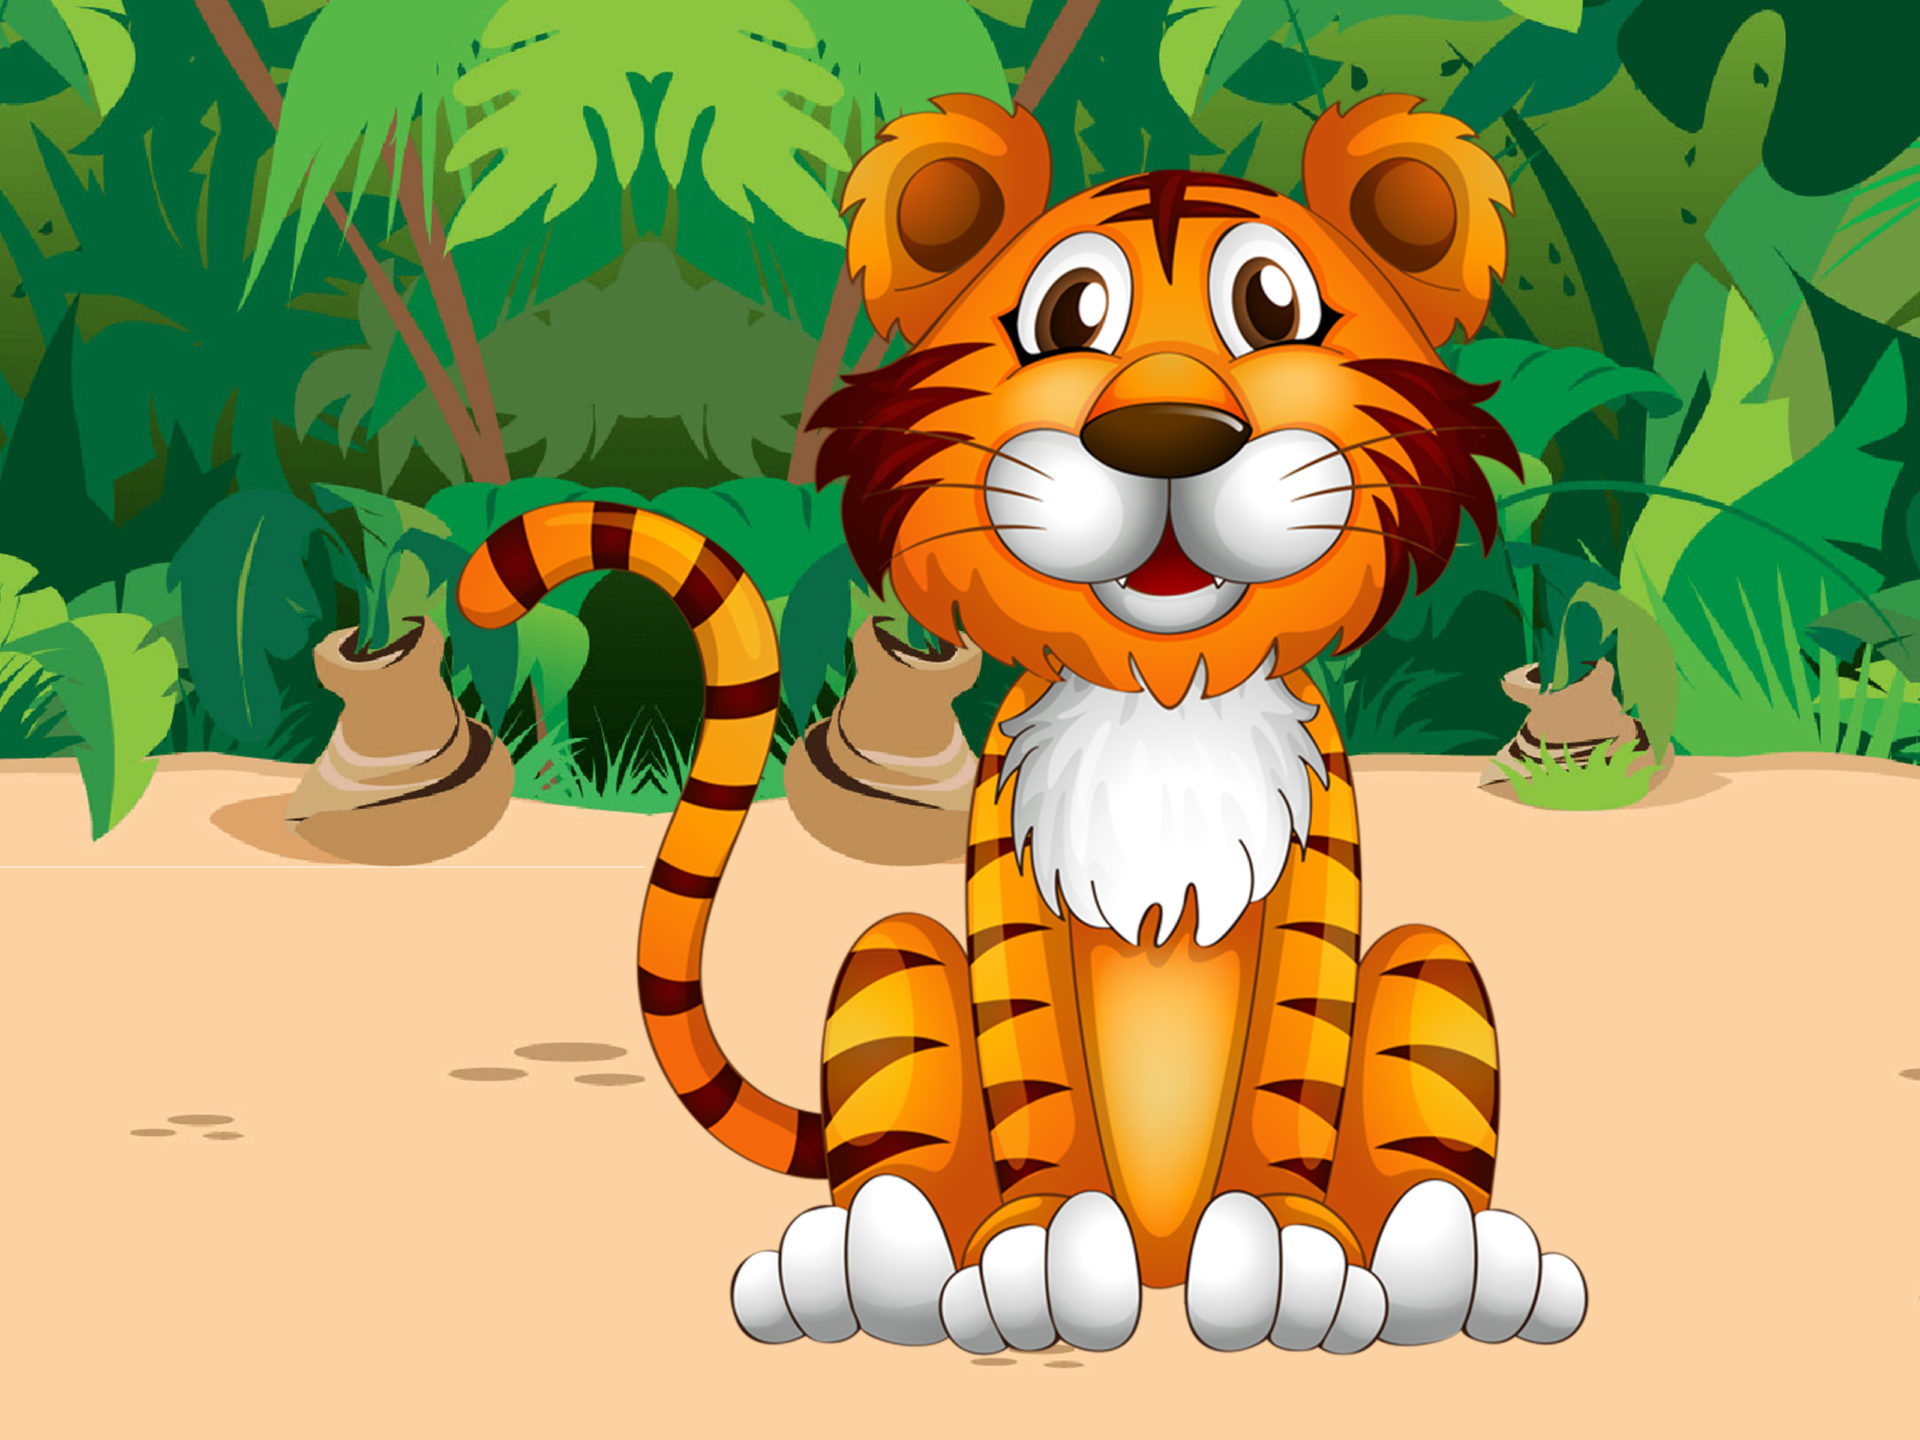 Cute Cartoon Animal Wallpapers For Android Cute Tiger Jungle Plant Cartoon Picture Pretty Desktop Hd